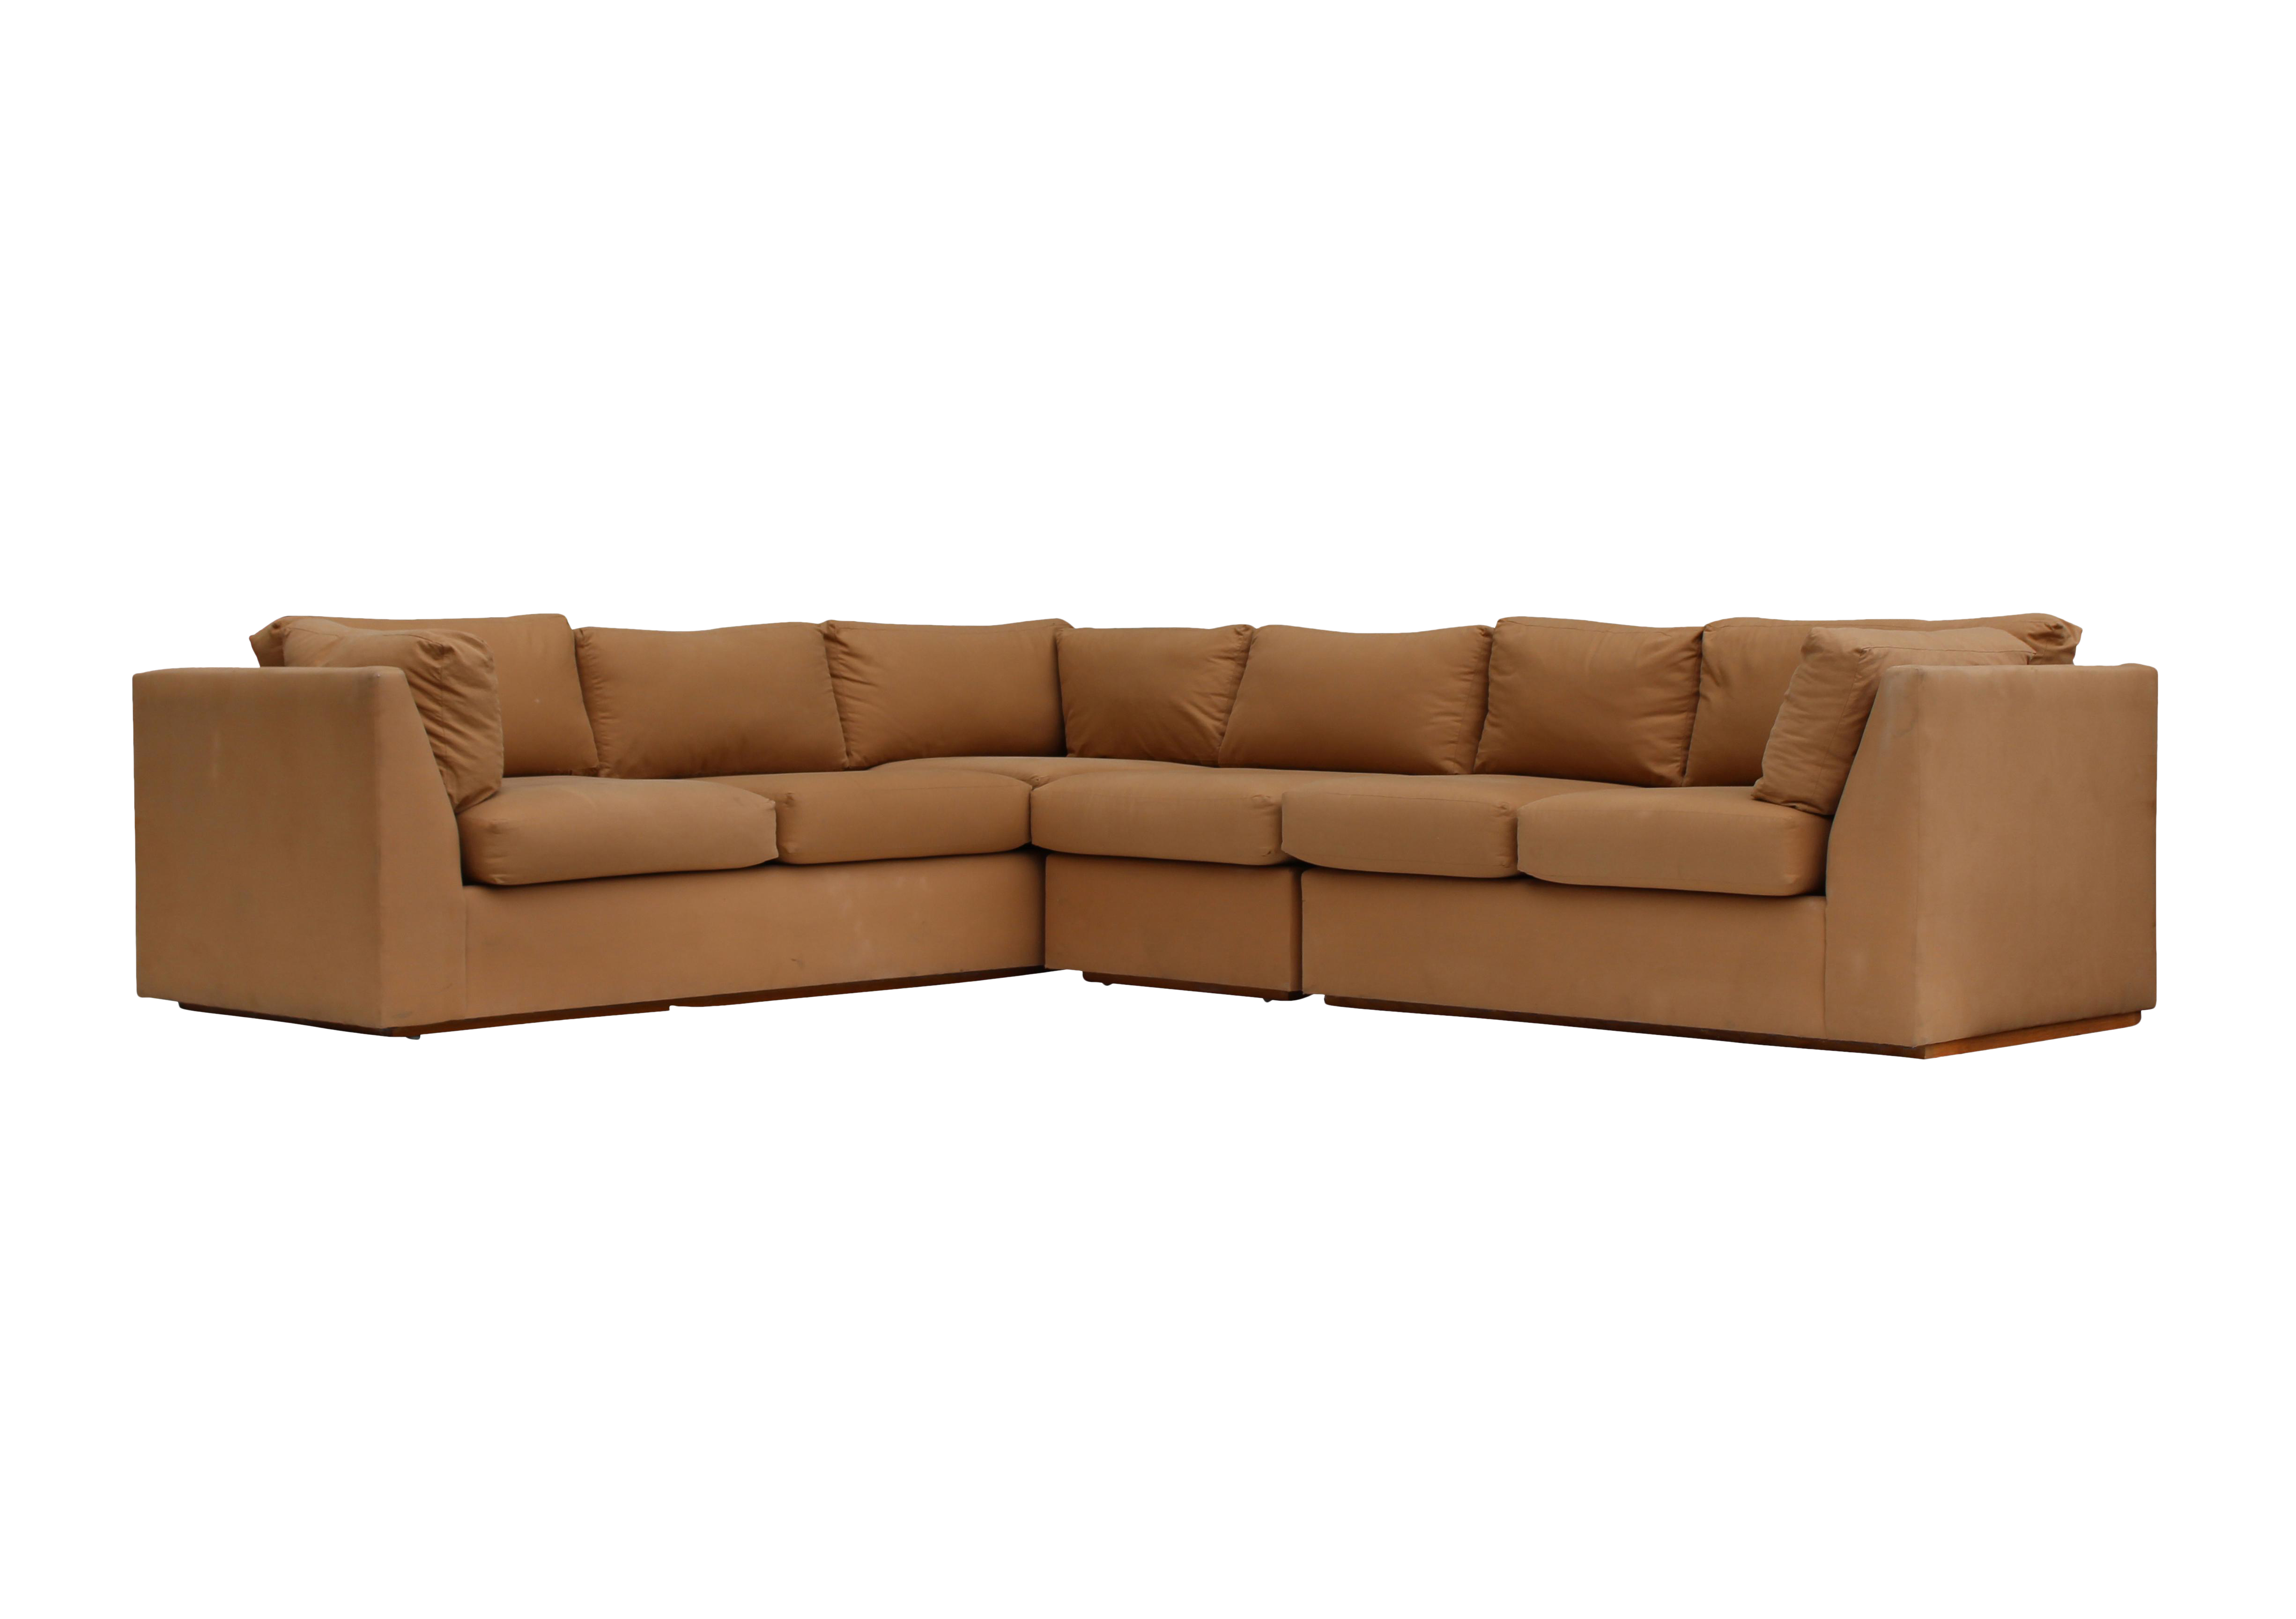 Modern 3 Piece Sectional Sofa For Sale